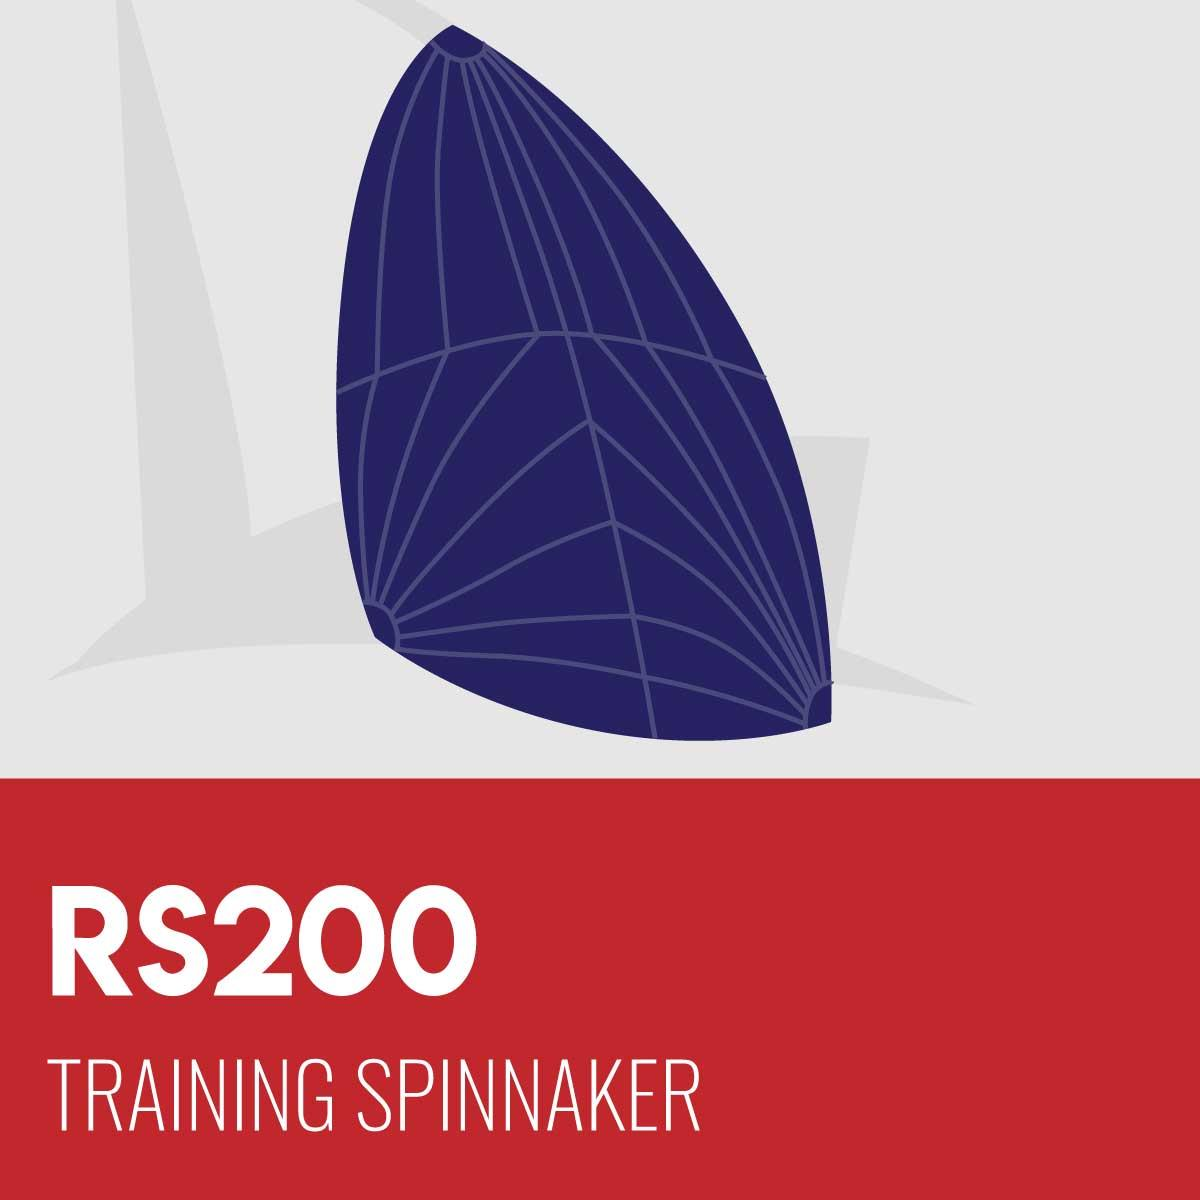 RS200 Training Spinnaker